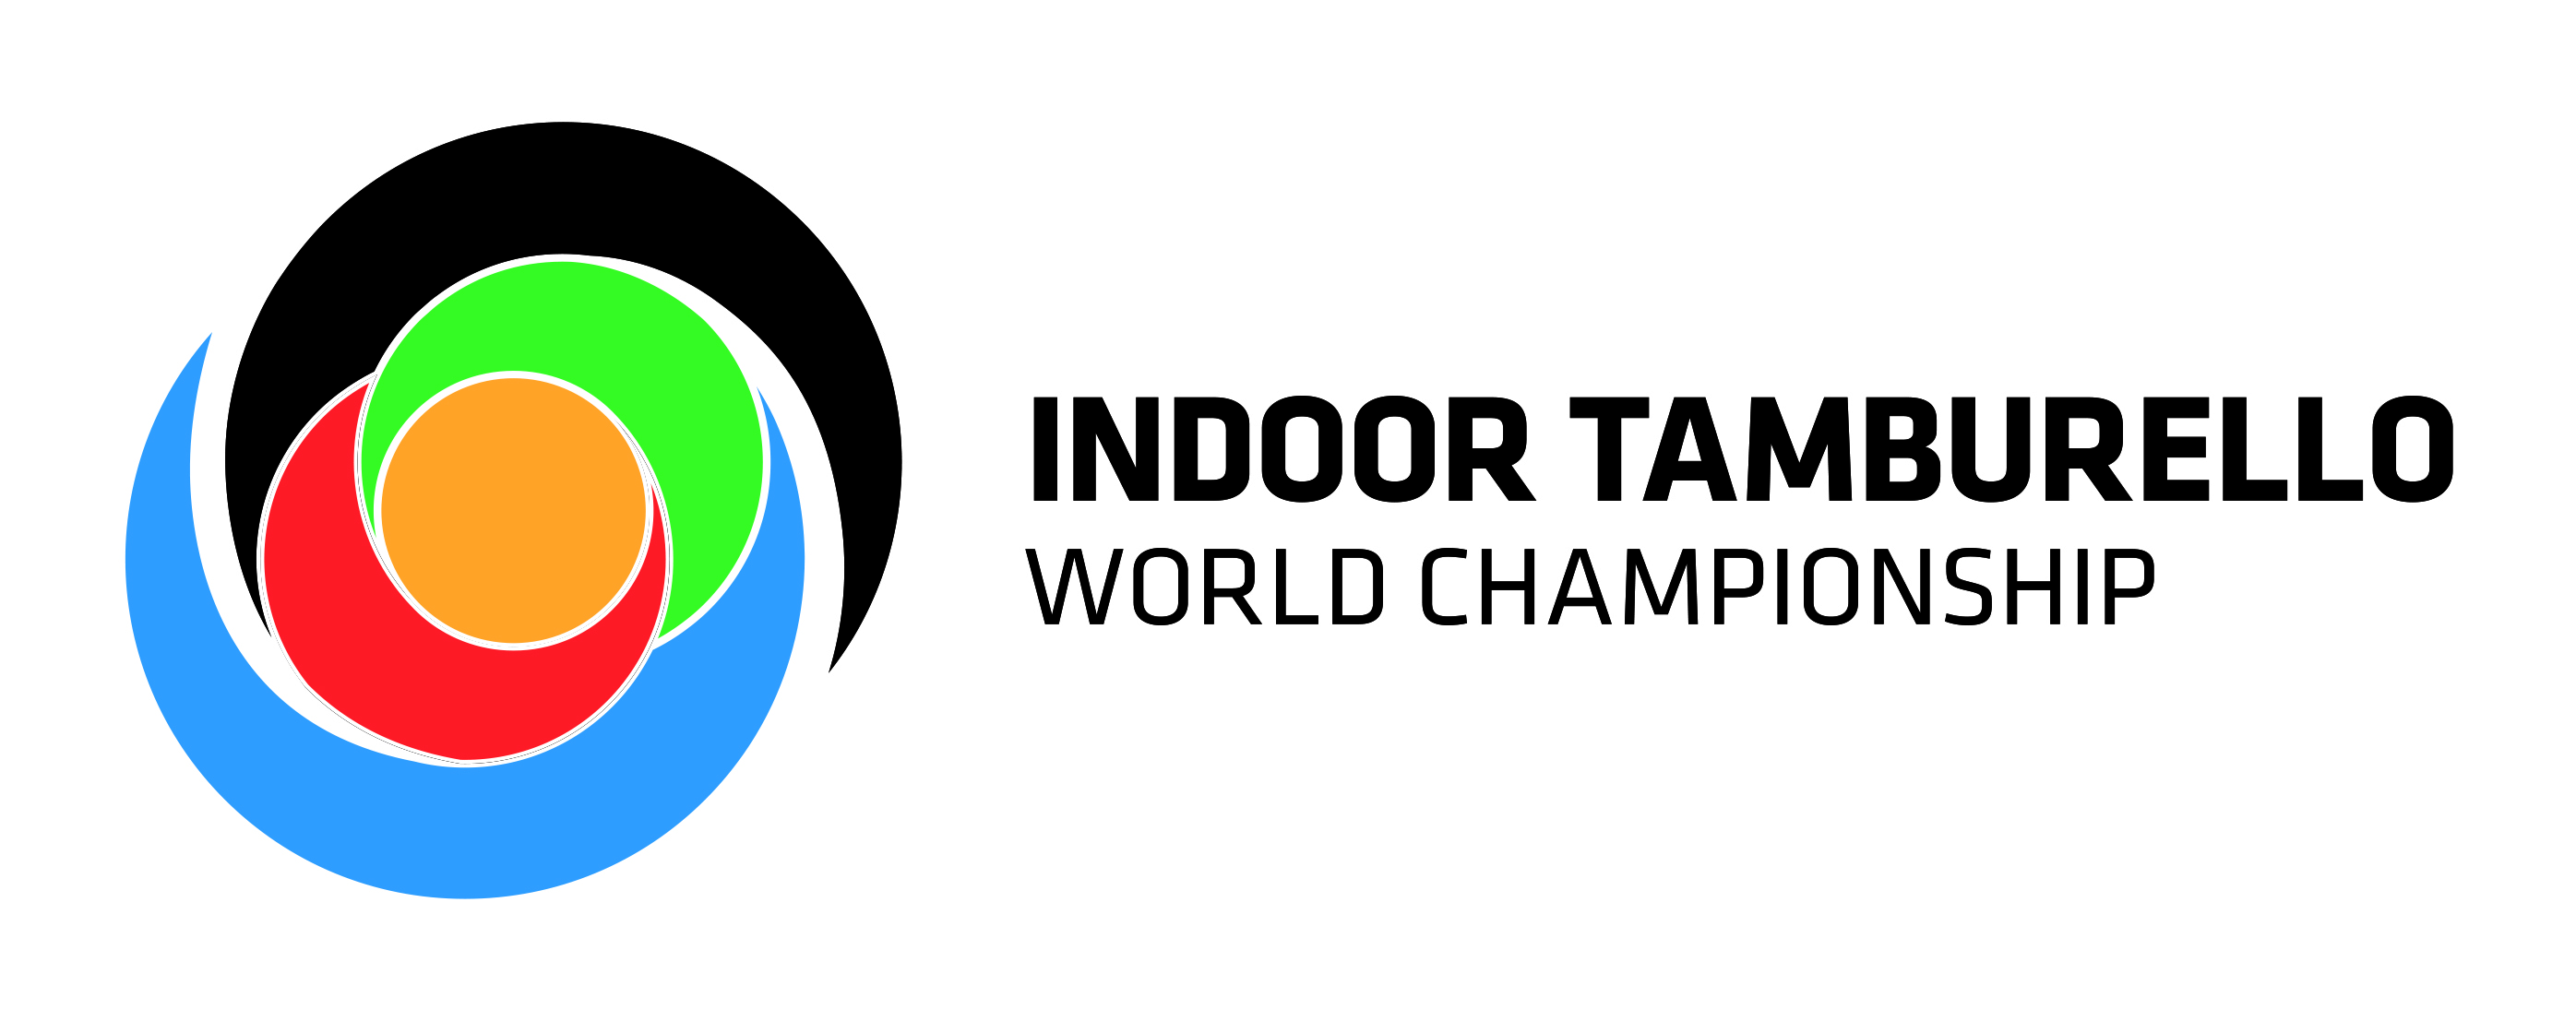 images/News_2019/Mondiale_INDOOR_2019/TAMBURELLO_ORIZ_POS.jpg